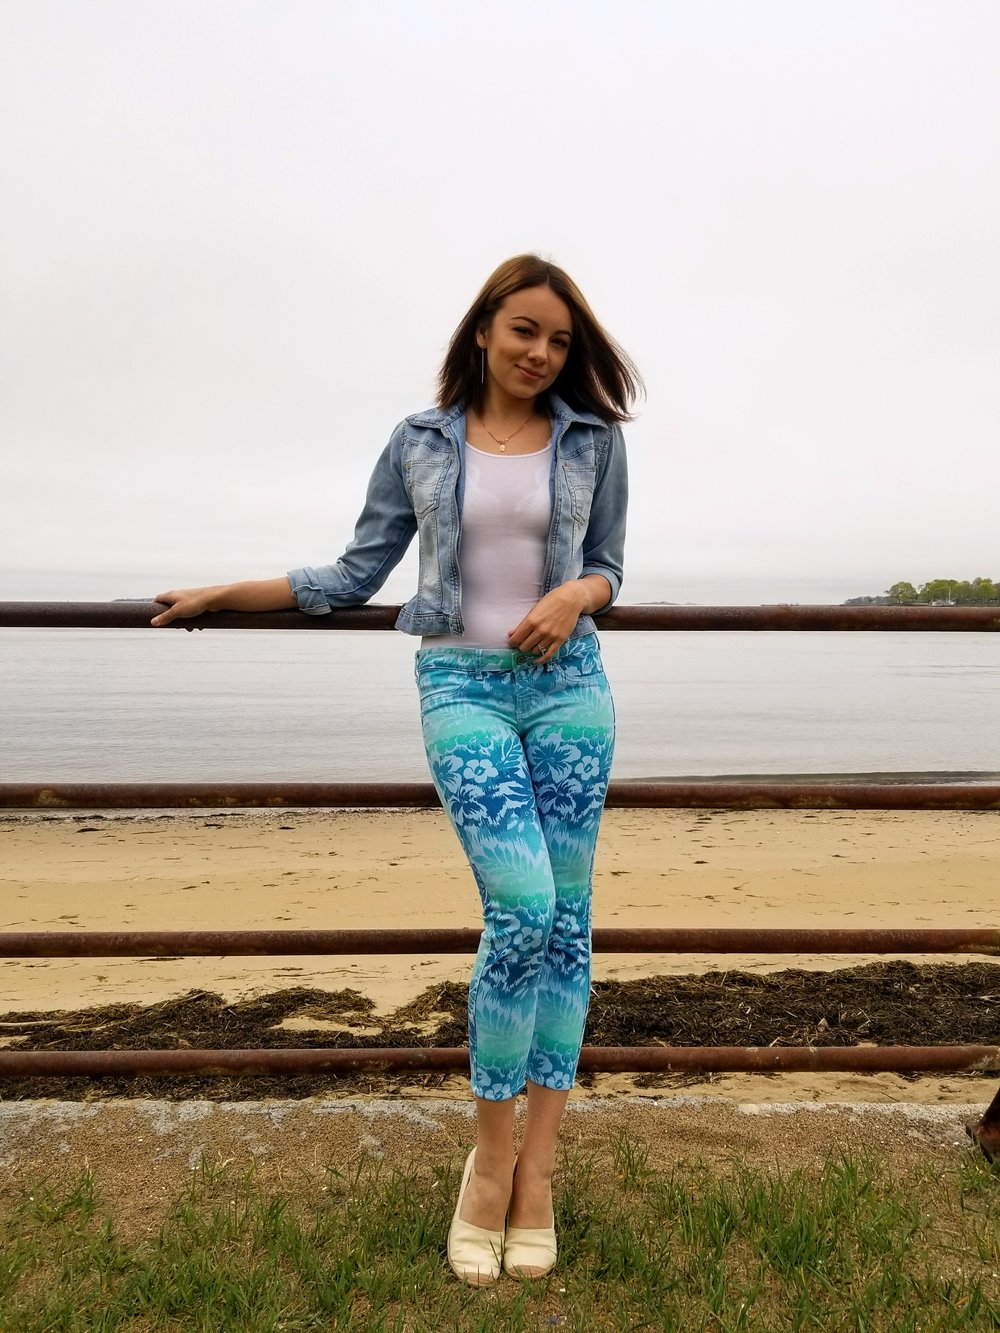 A girl standing by the beach wearing a white t-shirt, jean jacket, colorful pants with blue and green pattern.